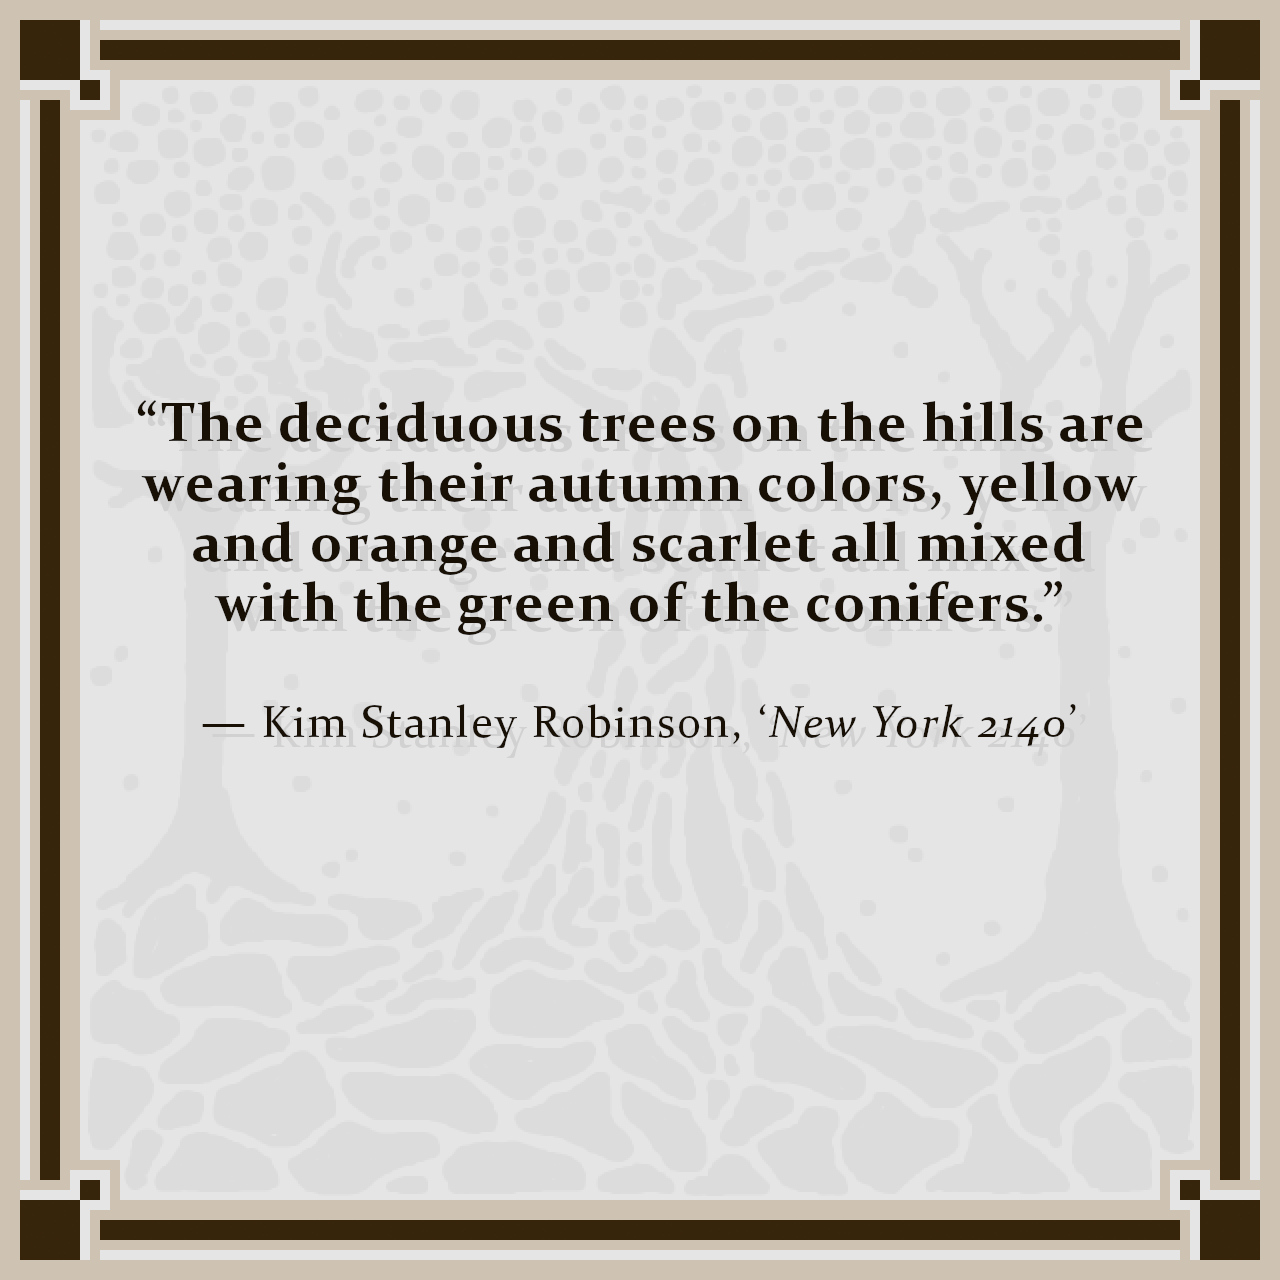 """""""The deciduous trees on the hills are wearing their autumn colors, yellow and orange and scarlet all mixed with the green of the conifers."""" — Kim Stanley Robinson, 'New York 2140'"""